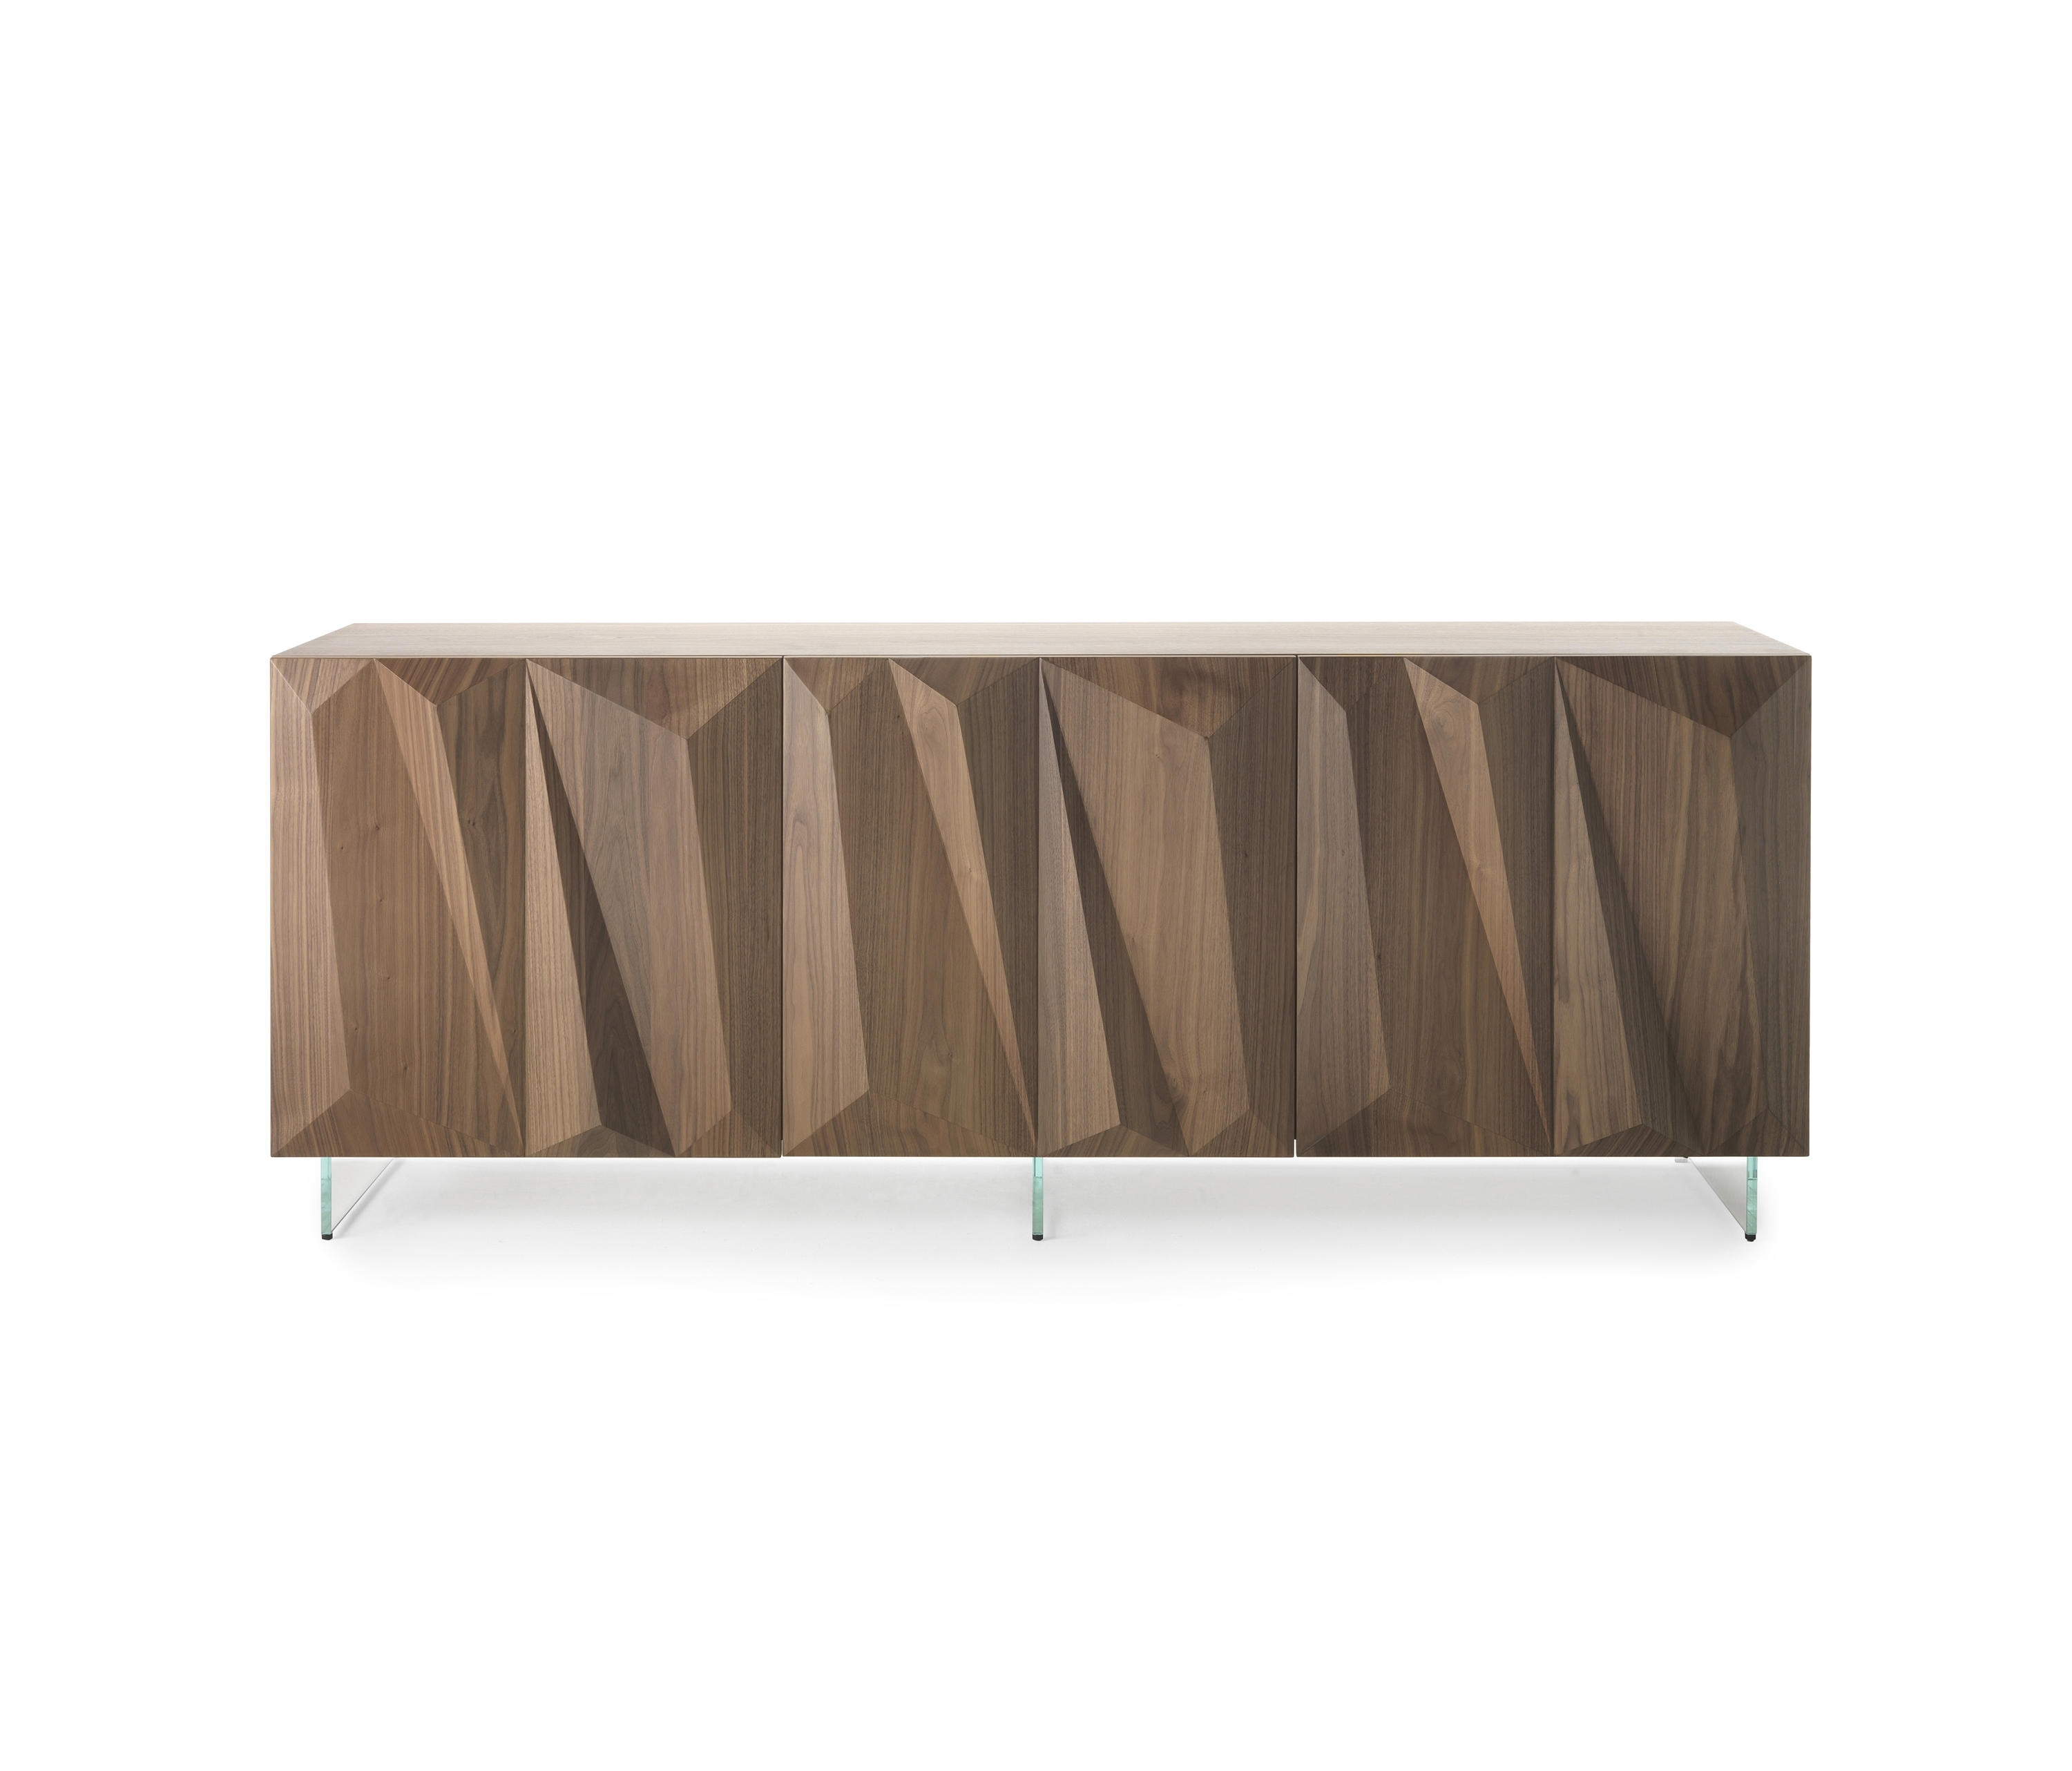 Quartz Buffet - Sideboards From Reflex | Architonic pertaining to 4 Door Wood Squares Sideboards (Image 25 of 30)